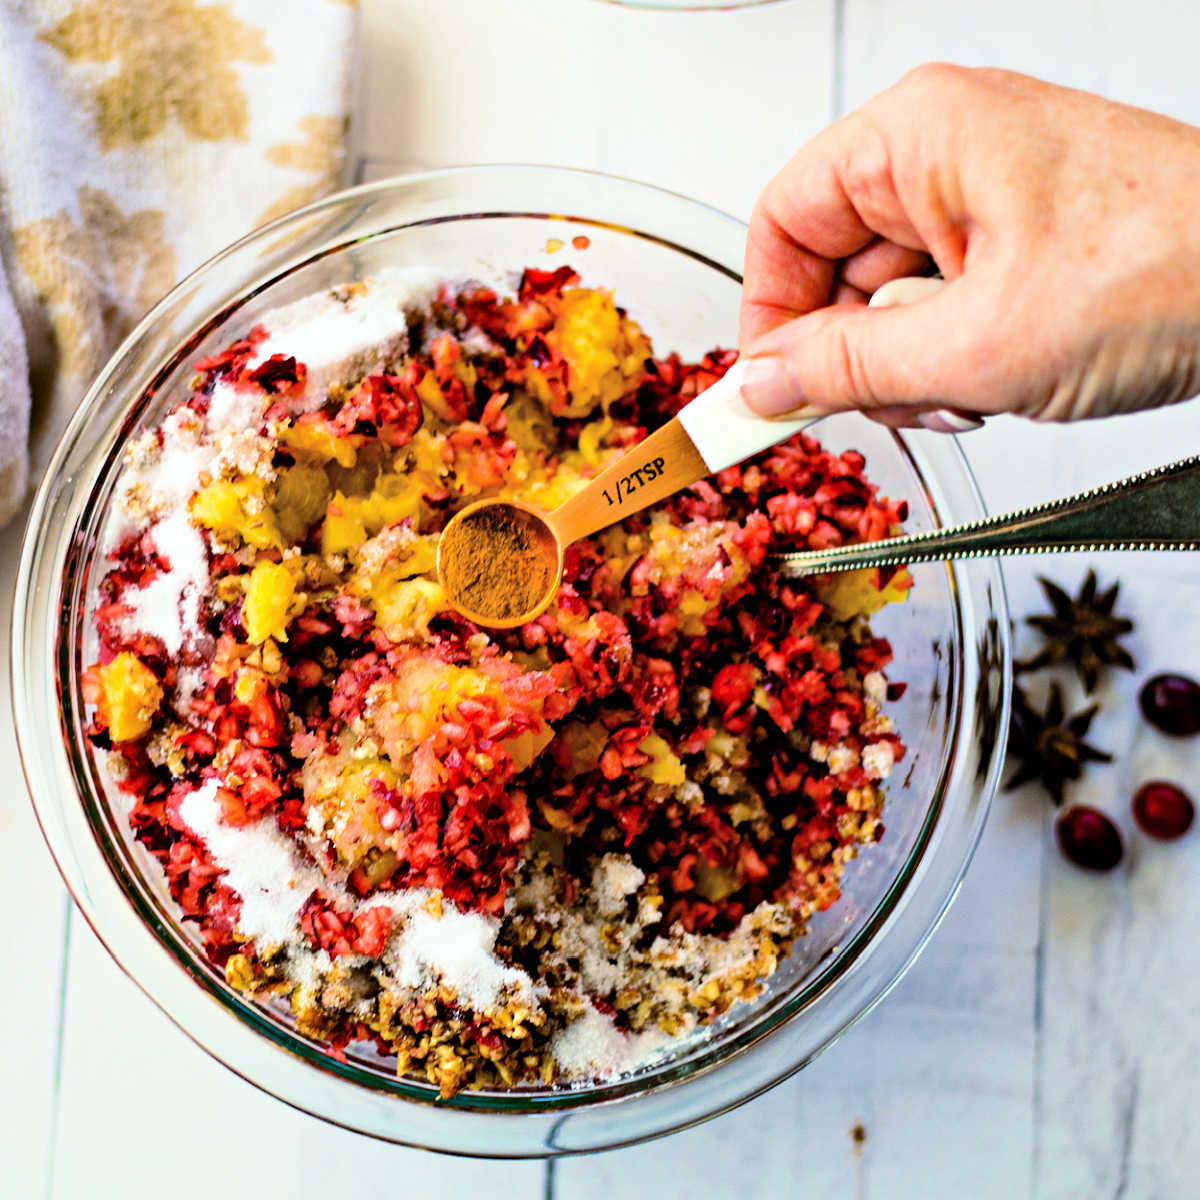 adding cinnamon to a bowl of chopped cranberries for relish